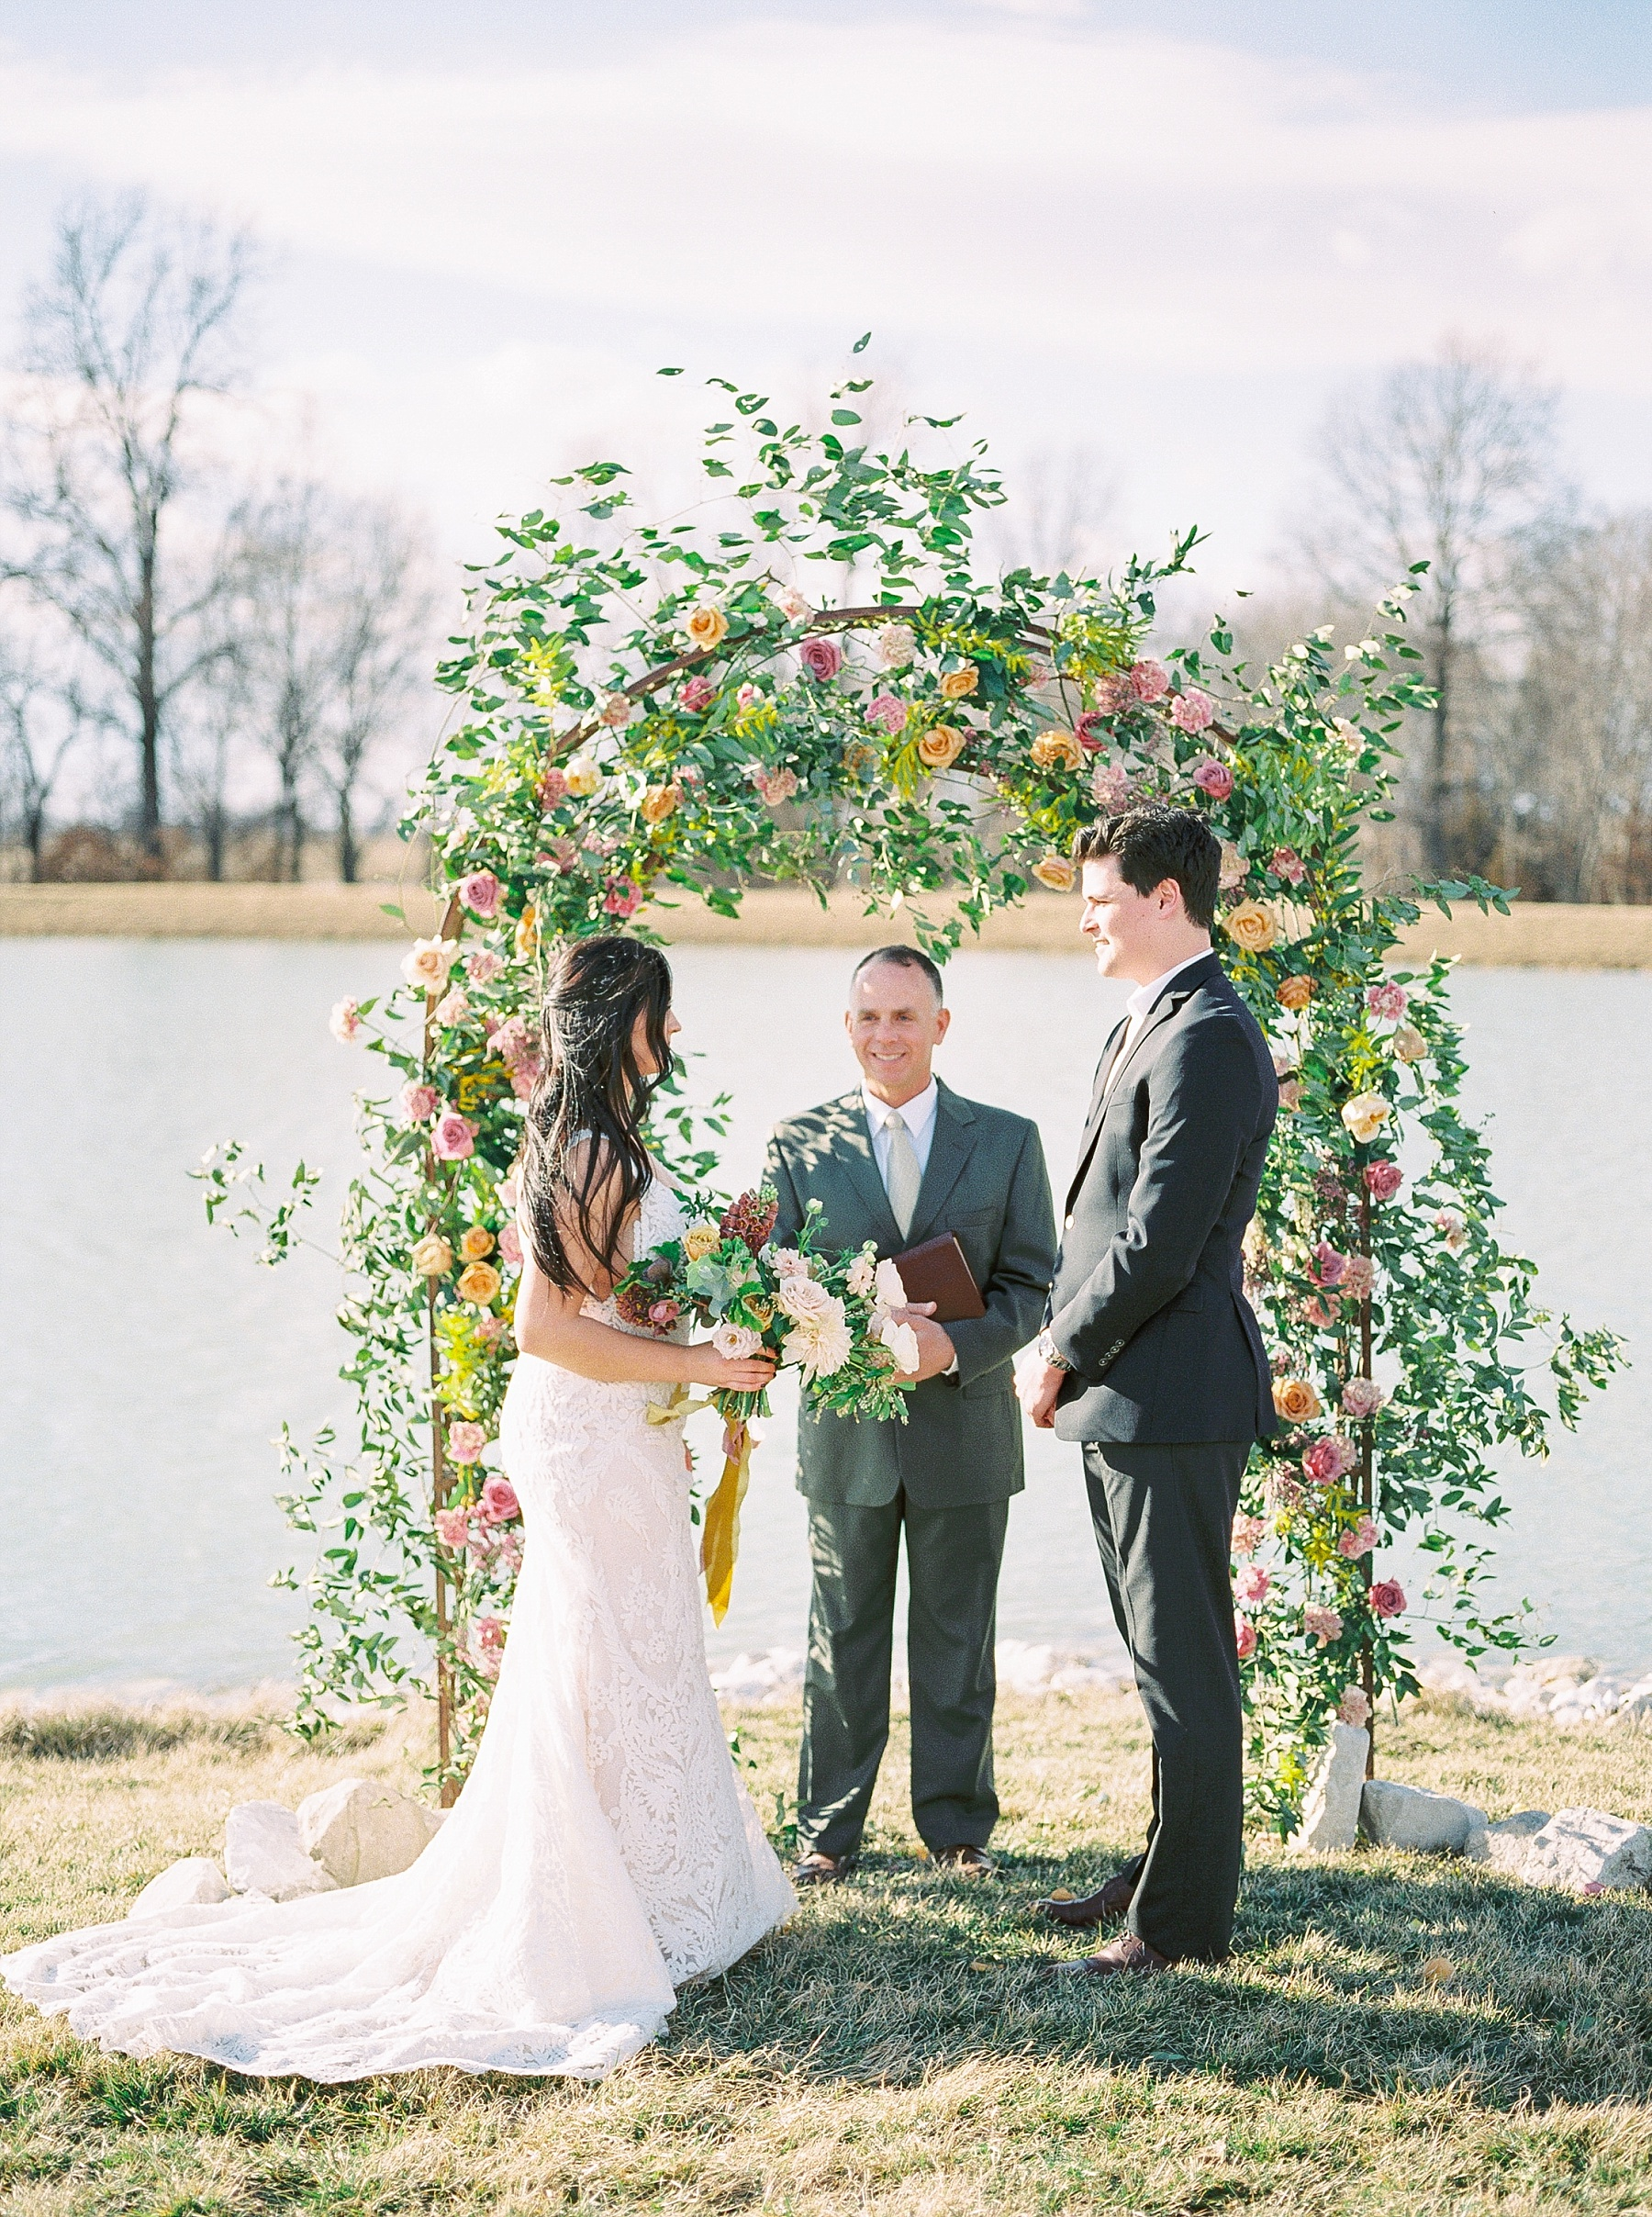 Lakeside Sunset Wedding with Magnificent Abundance of Blooms at Emerson Fields by Kelsi Kliethermes Photography Best Missouri and Maui Wedding Photographer_0039.jpg